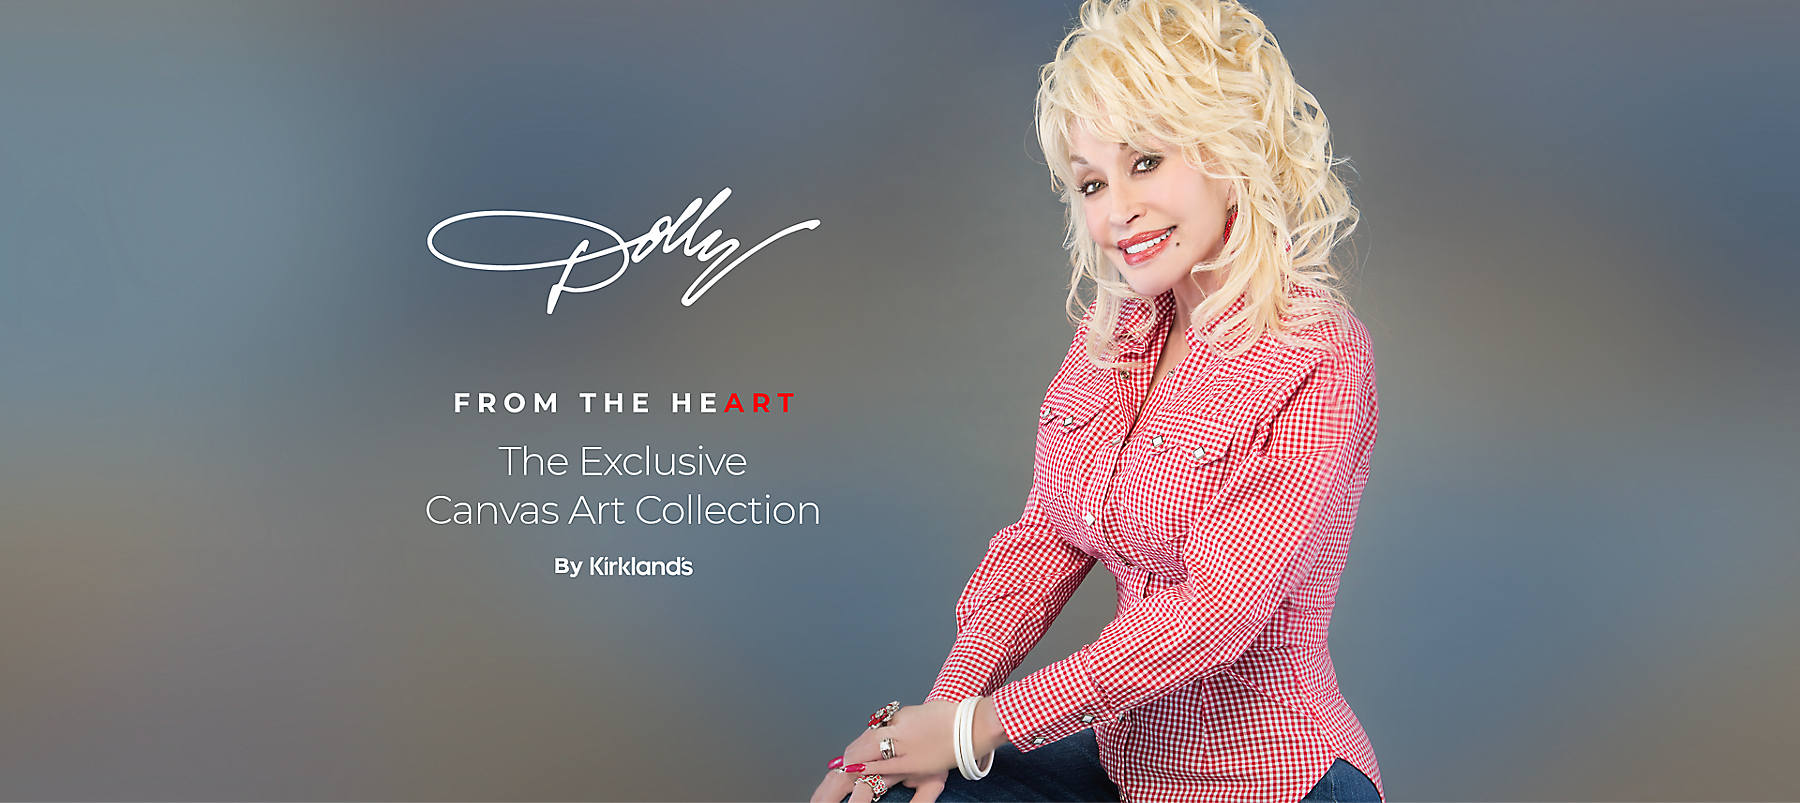 From the Art - The Exclusive Canvas Art Collection from Dolly